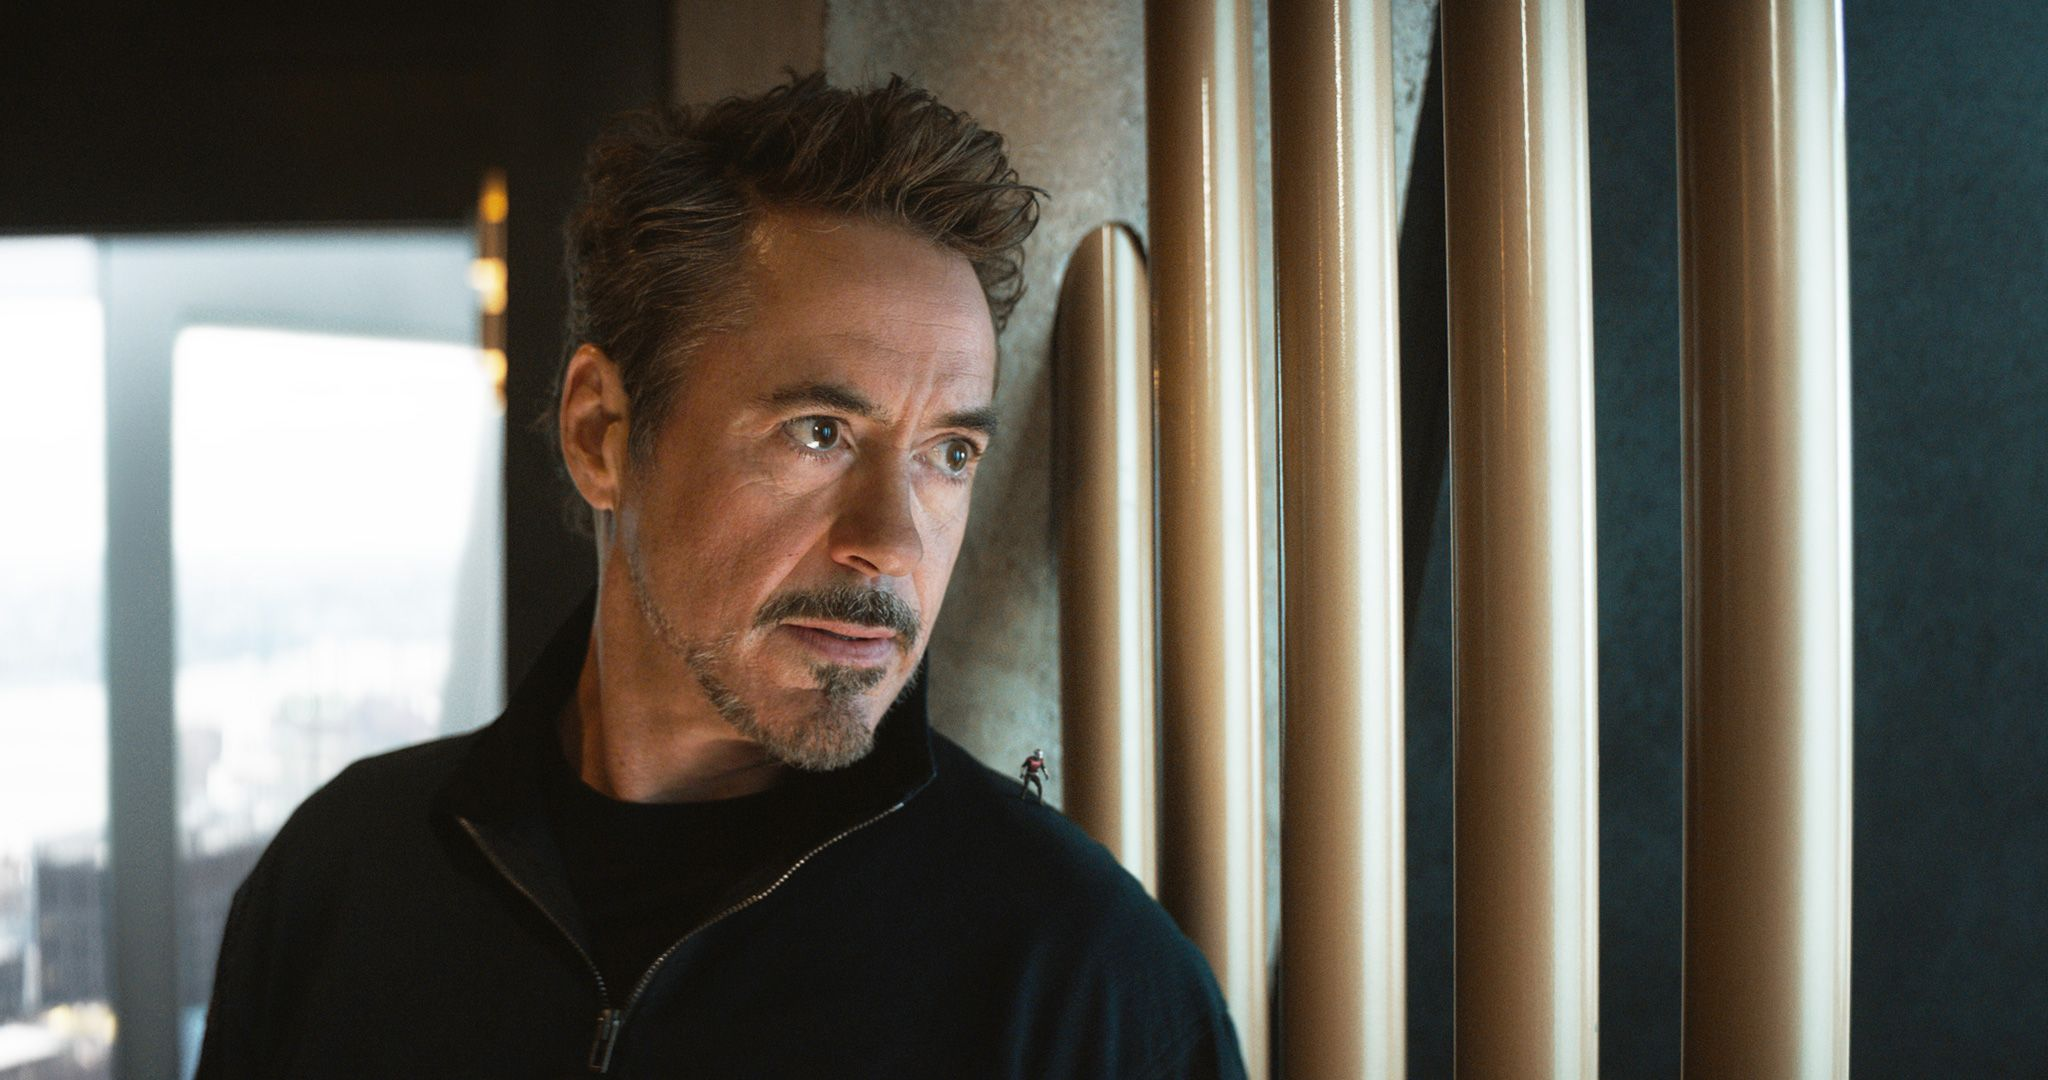 Sensational Why Avengers Endgame Cut Emotional Tony Stark Kneeling Scene Natural Hairstyles Runnerswayorg